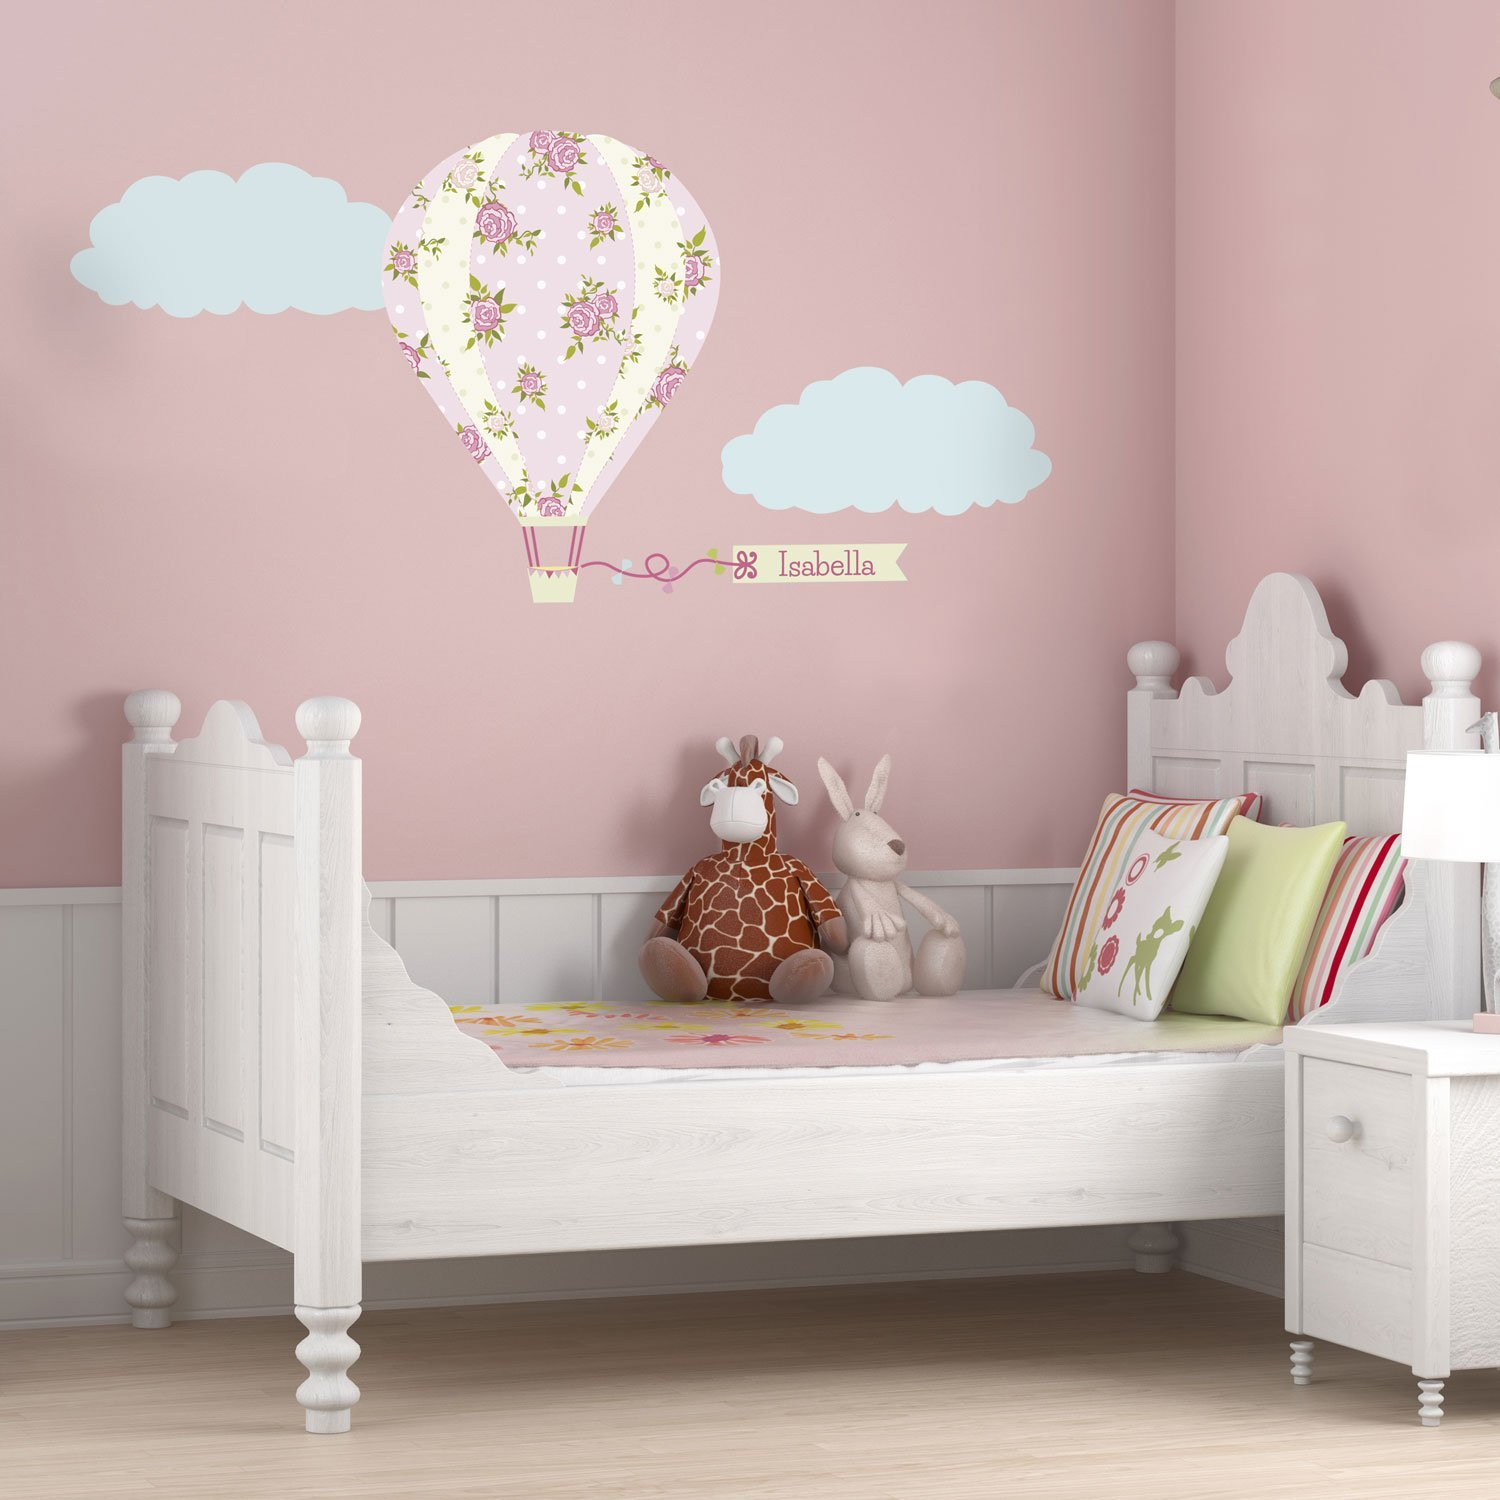 New personalised wall stickers personalised vintage hot air balloon wall sticker (large size):  amazon.co.uk: baby nvmddie